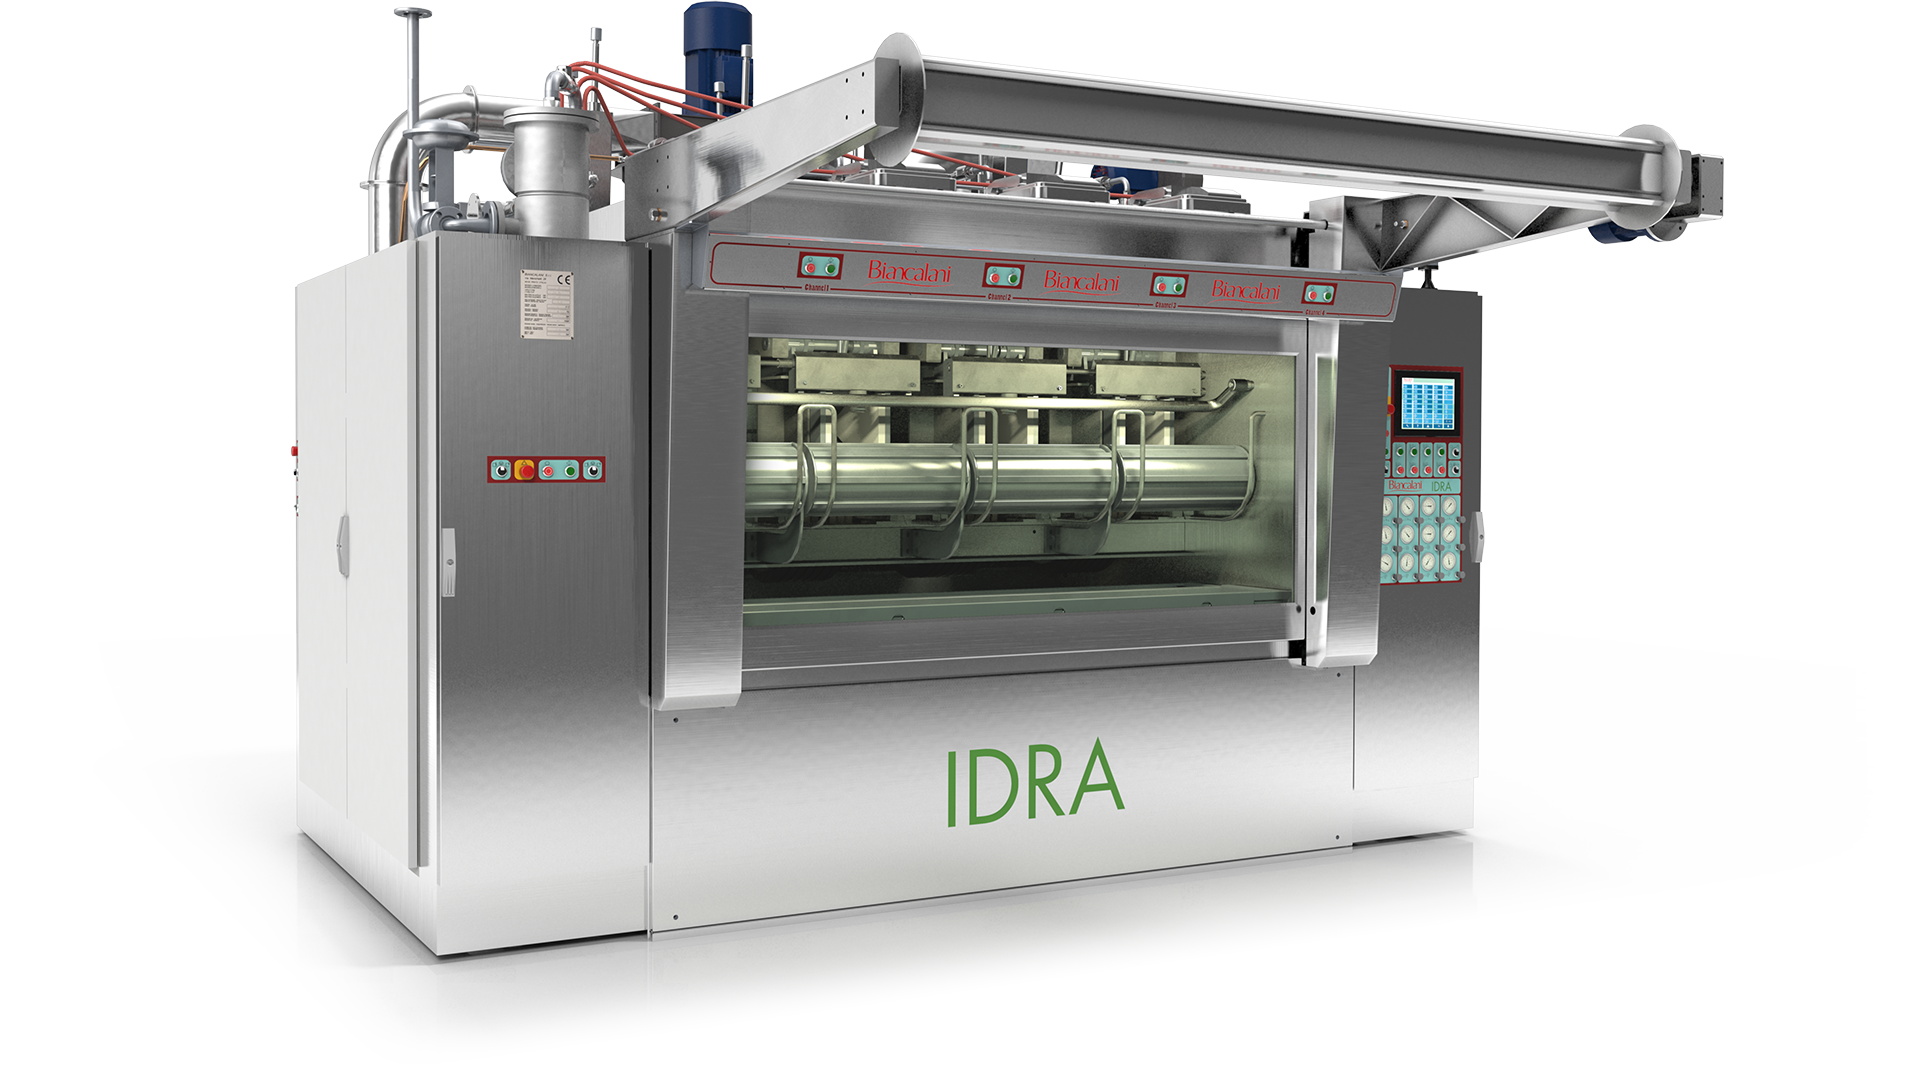 biancalani-idra-combined-modular-washing-and-milling-machine-with-independent-channels